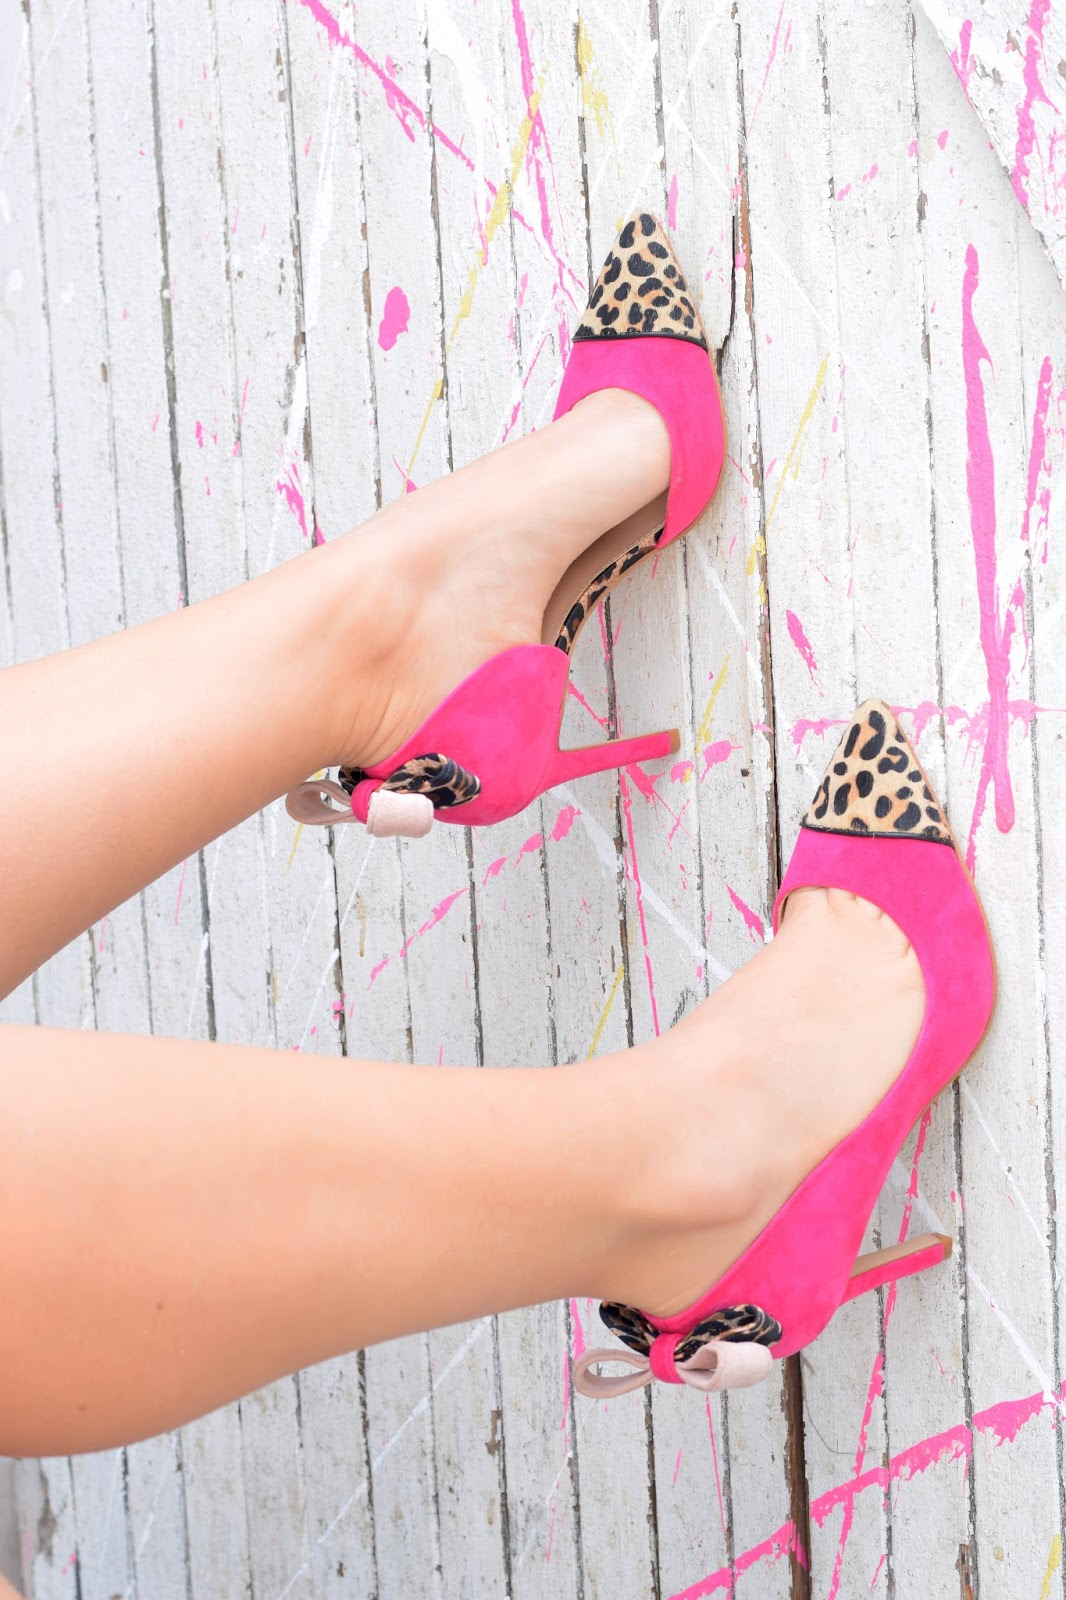 shoes of prey, designer shoes, pink shoes